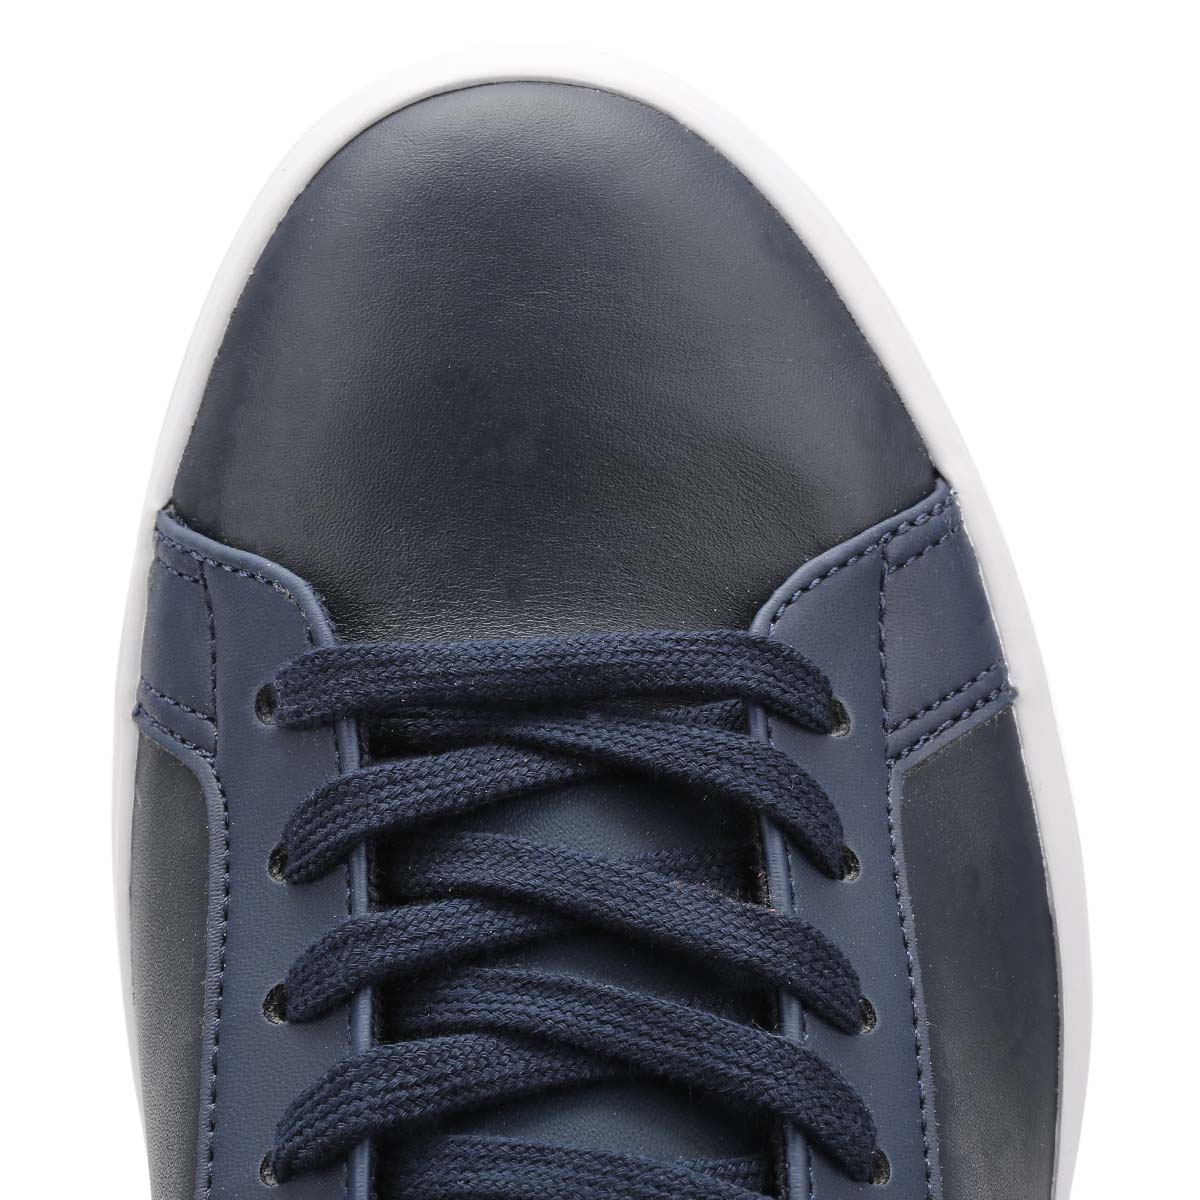 Lacoste White, Mens Lerond BL1 CAM Trainers, Navy Blue or White, Lacoste Lace Up, Casual Shoes 8644d1